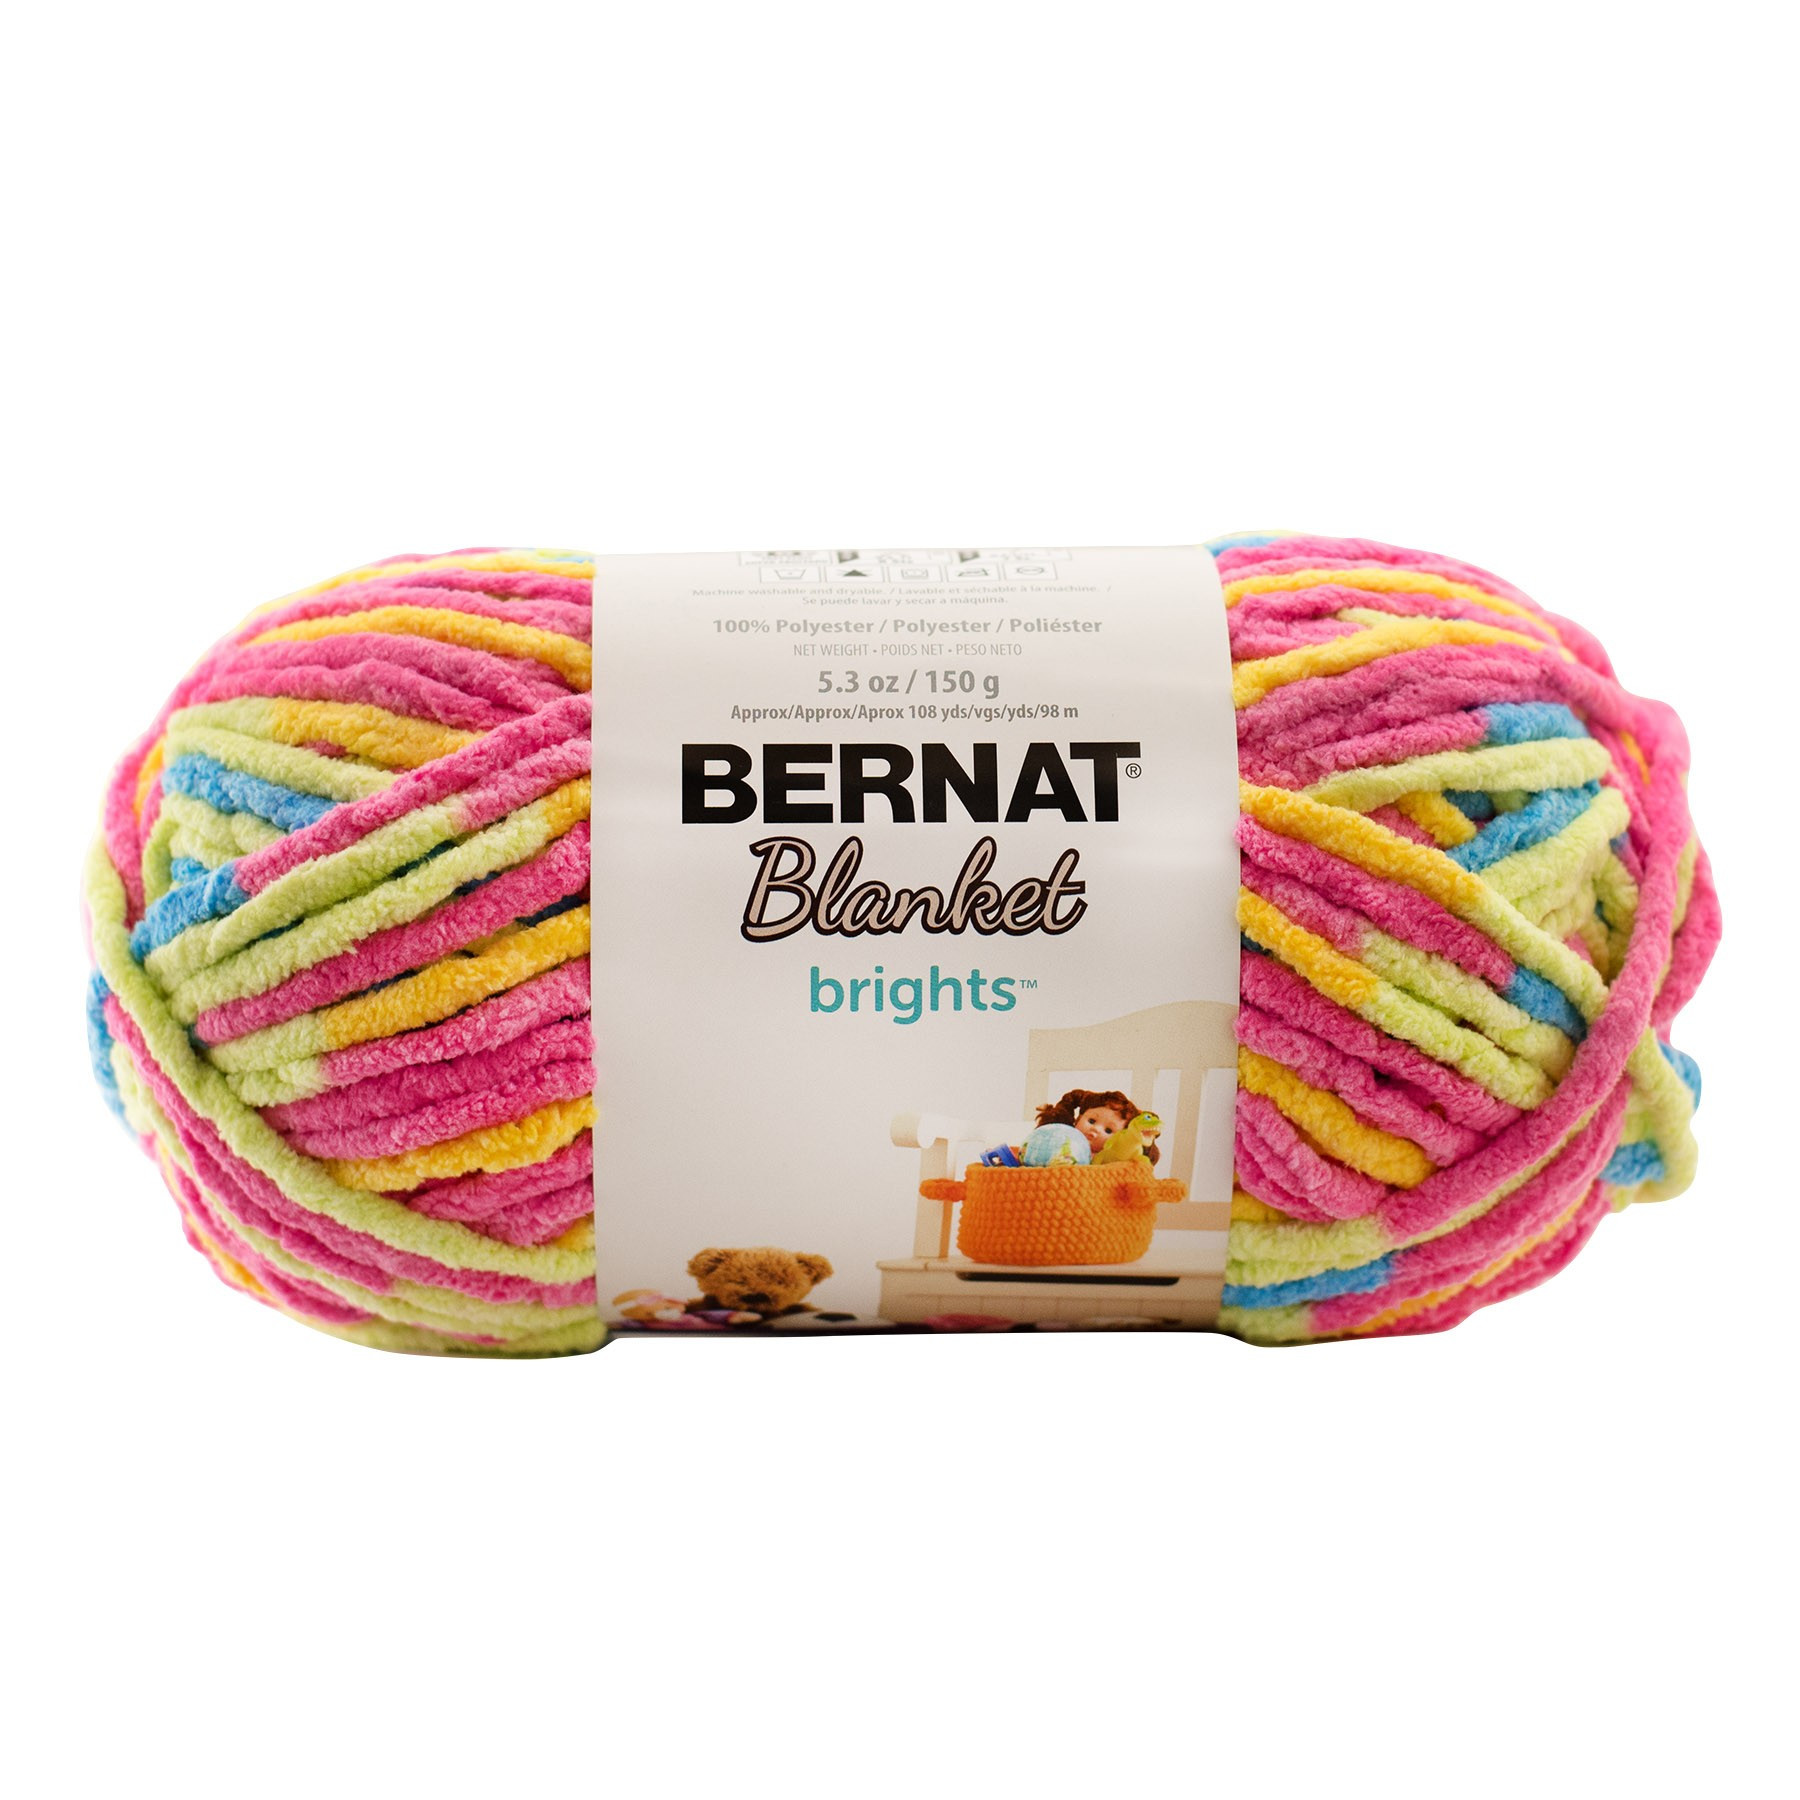 Bernat Blanket Brights Fresh Bernat Blanket Brights Knitting Yarn 150g Of Amazing 42 Pictures Bernat Blanket Brights